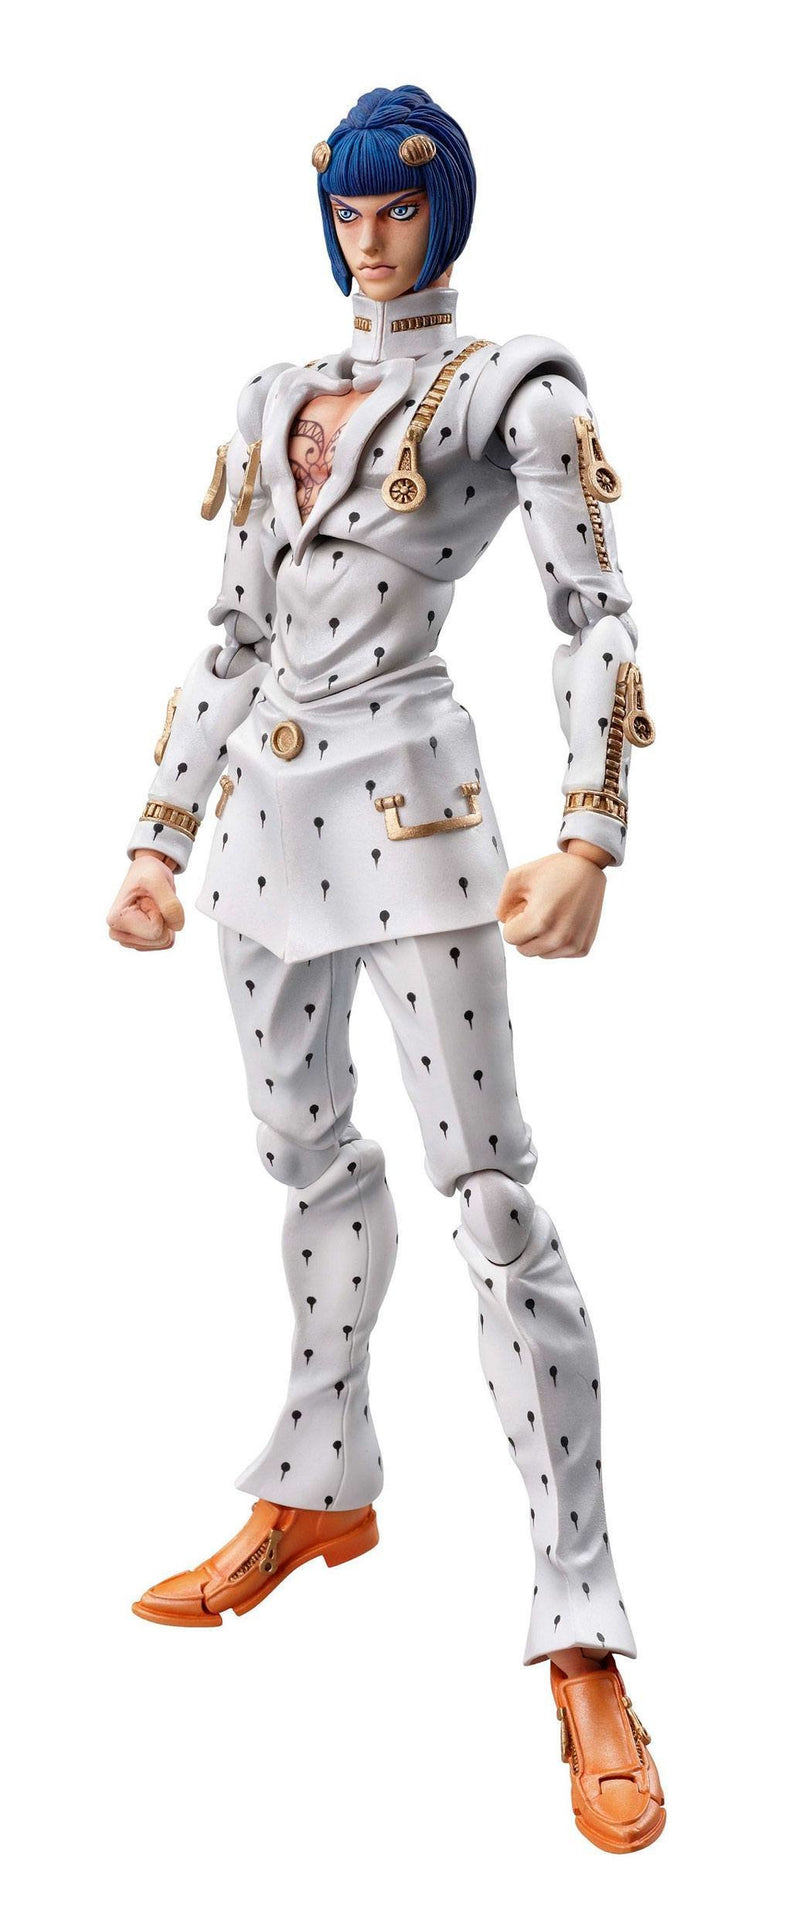 JoJo's Bizarre Adventure: Part 5 - Golden Wind: Bruno Bucciarati 16cm